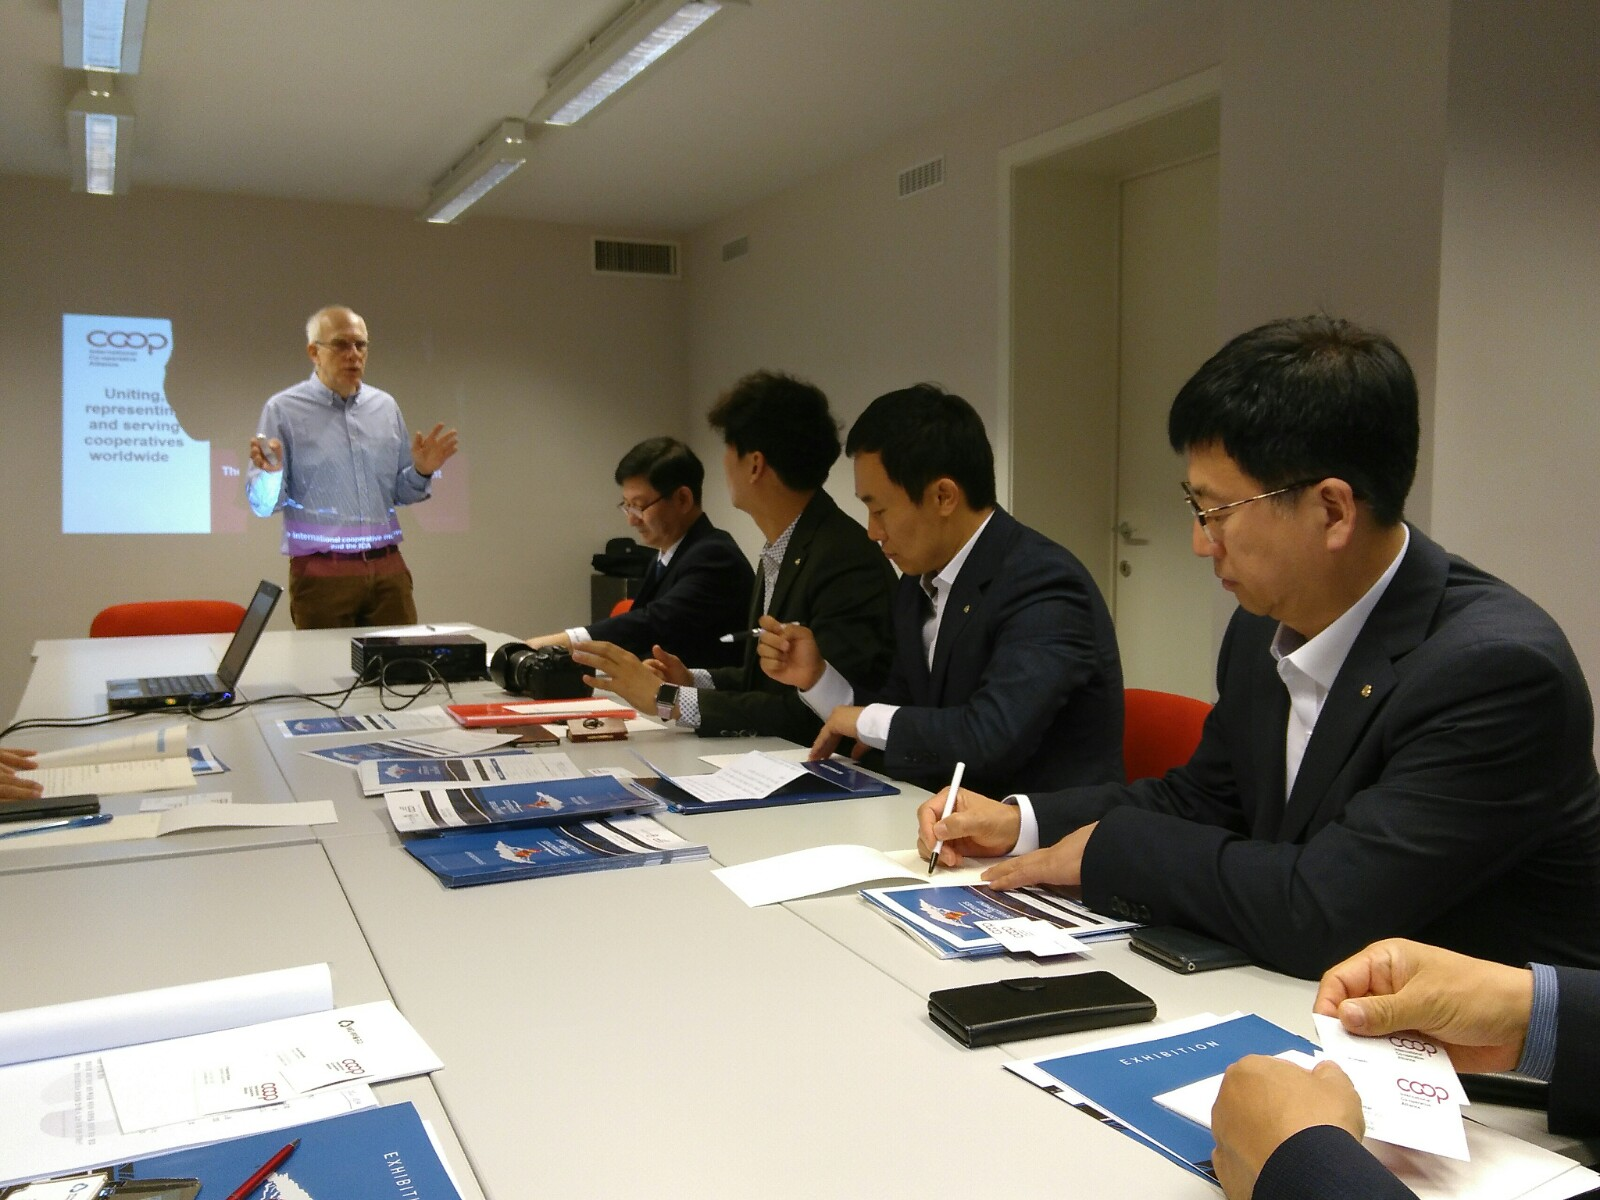 Korean cooperative leaders at the Cooperative House in Brussels